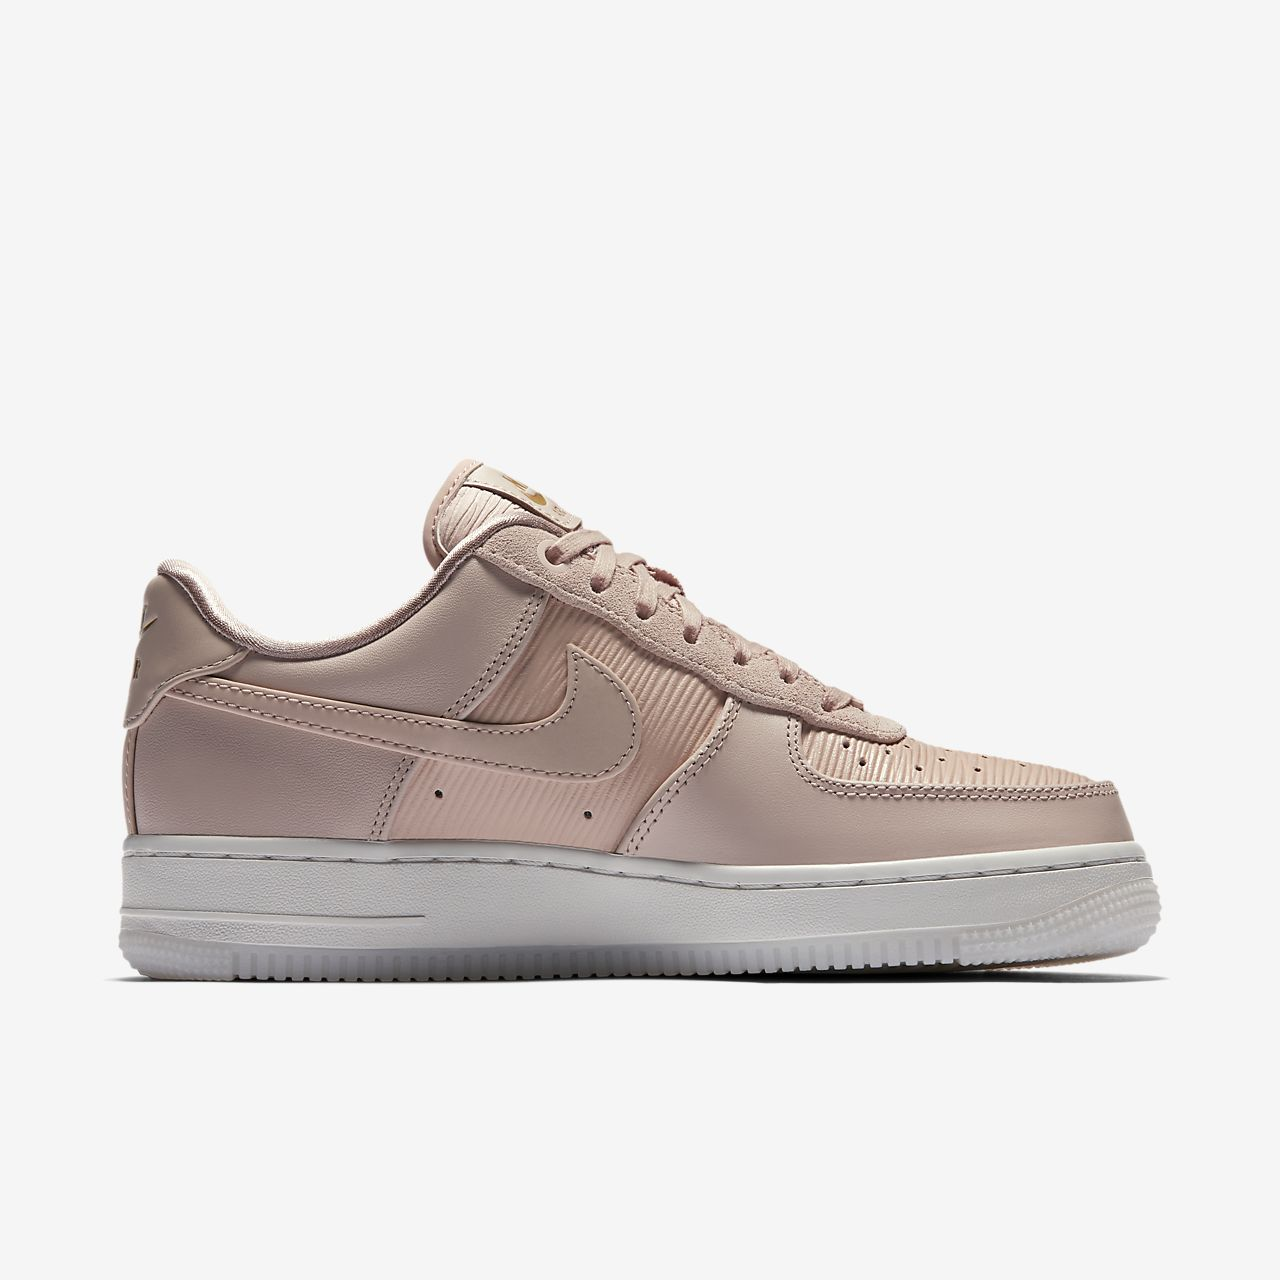 chaussure nike air force 1 39 07 lx pour femme fr. Black Bedroom Furniture Sets. Home Design Ideas